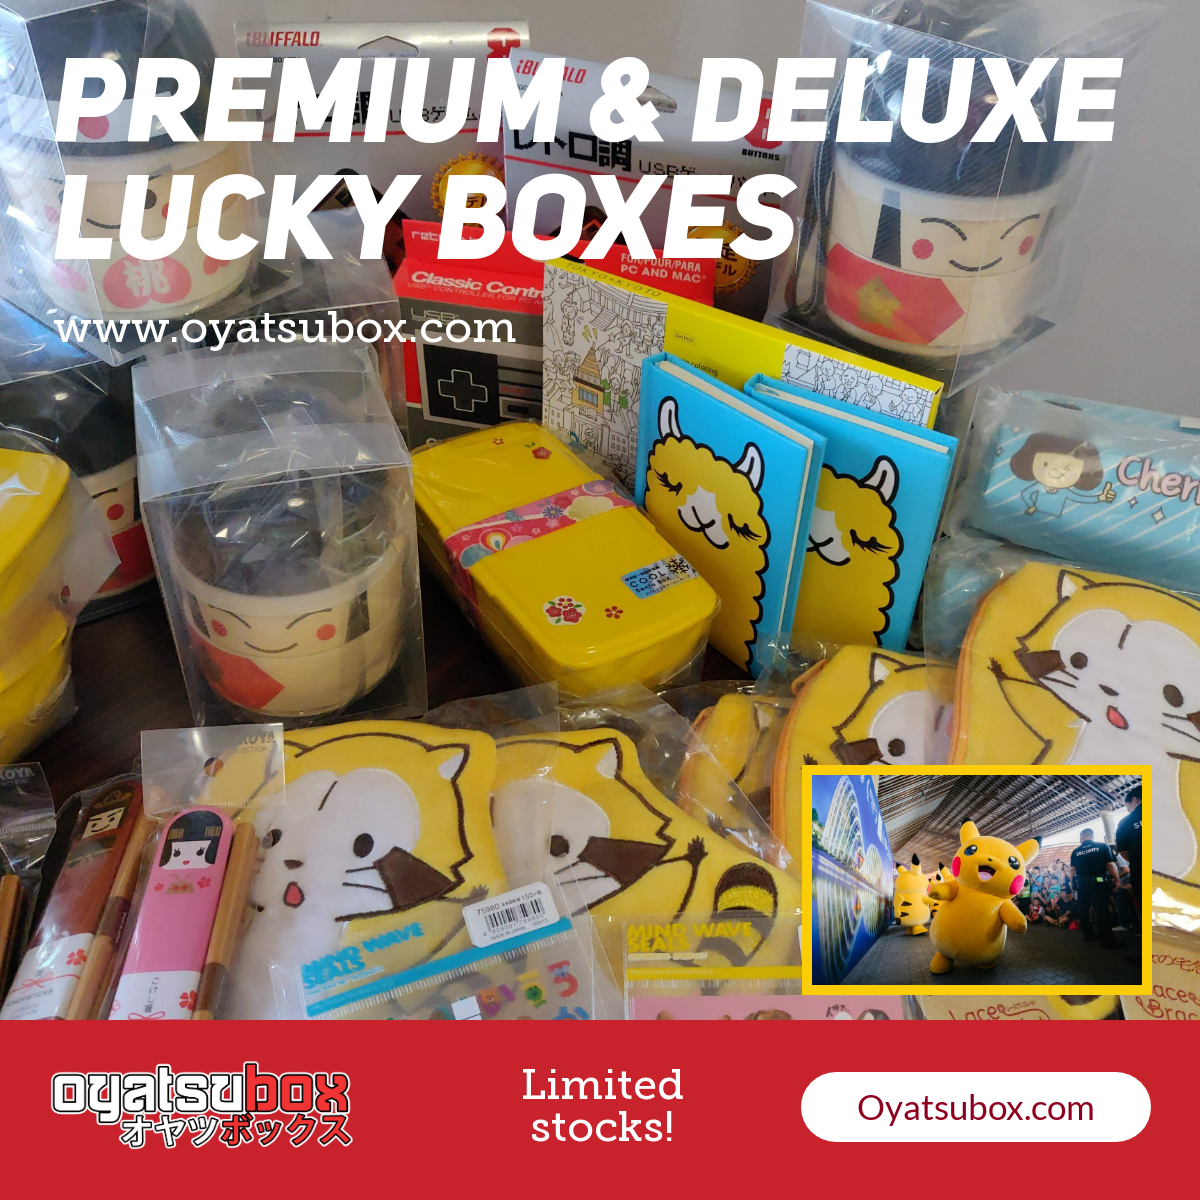 Lucky boxes are now available! Choose from a premium box